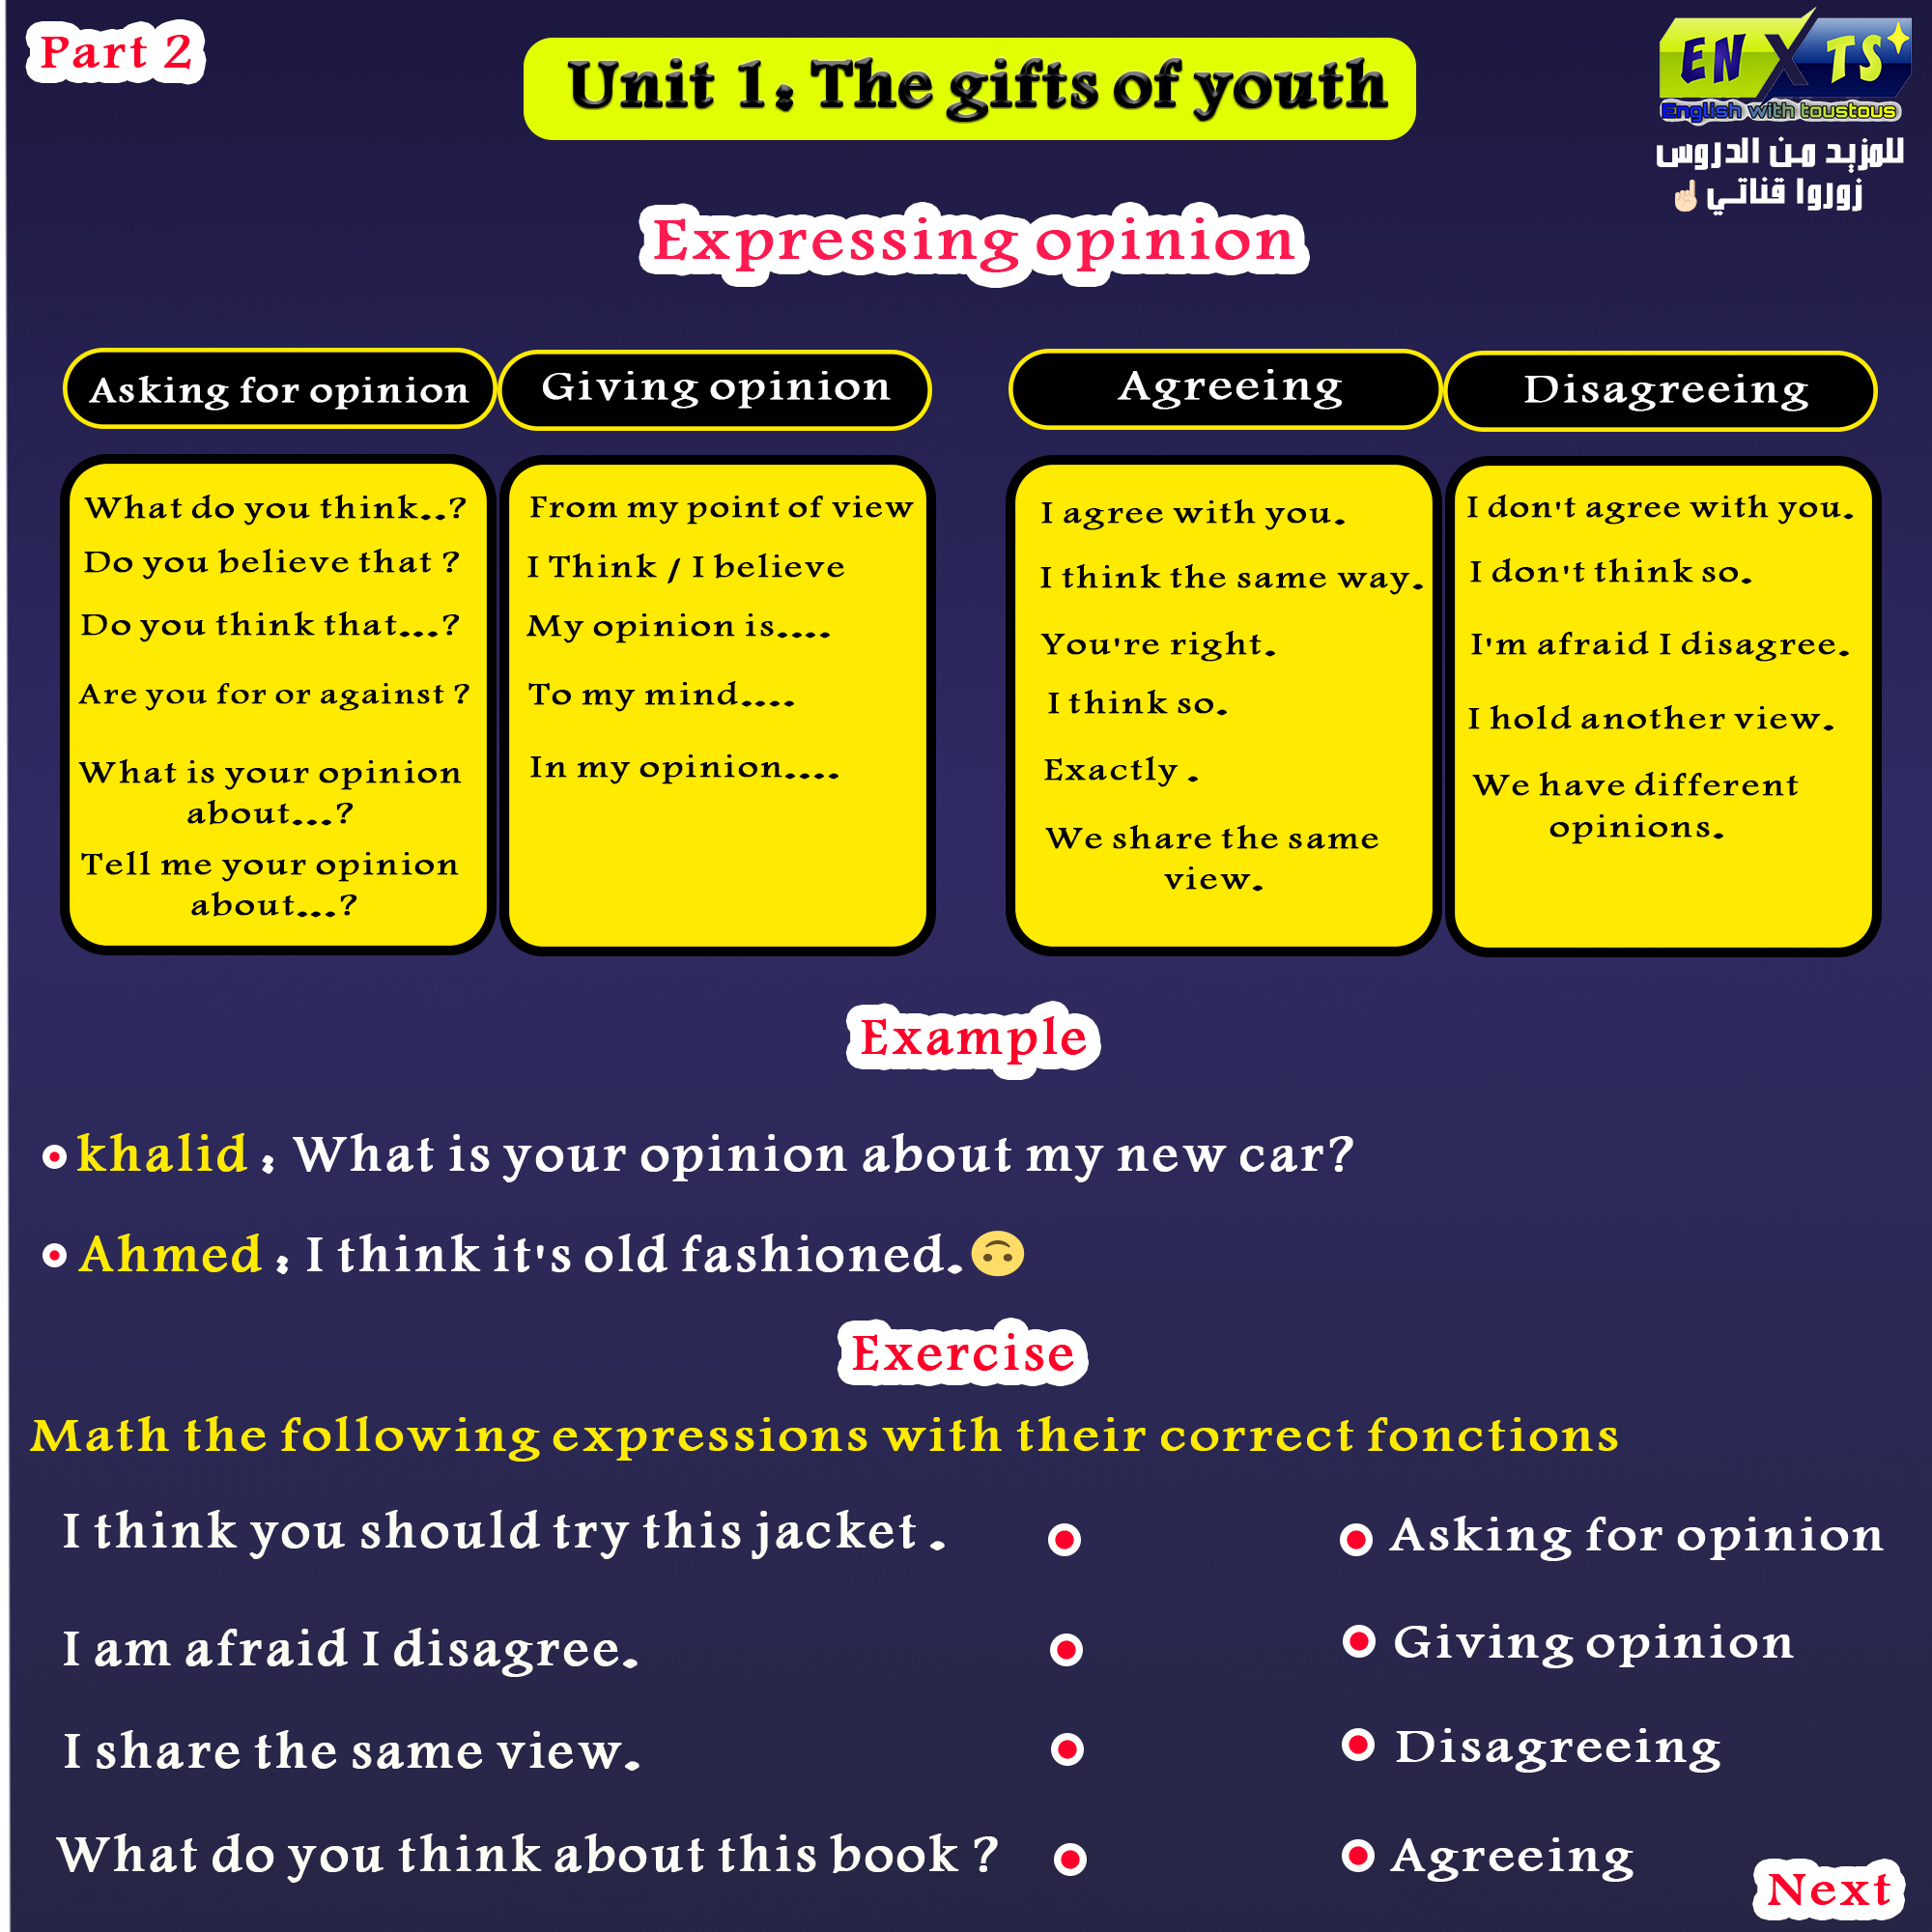 unit 1 gift of youth